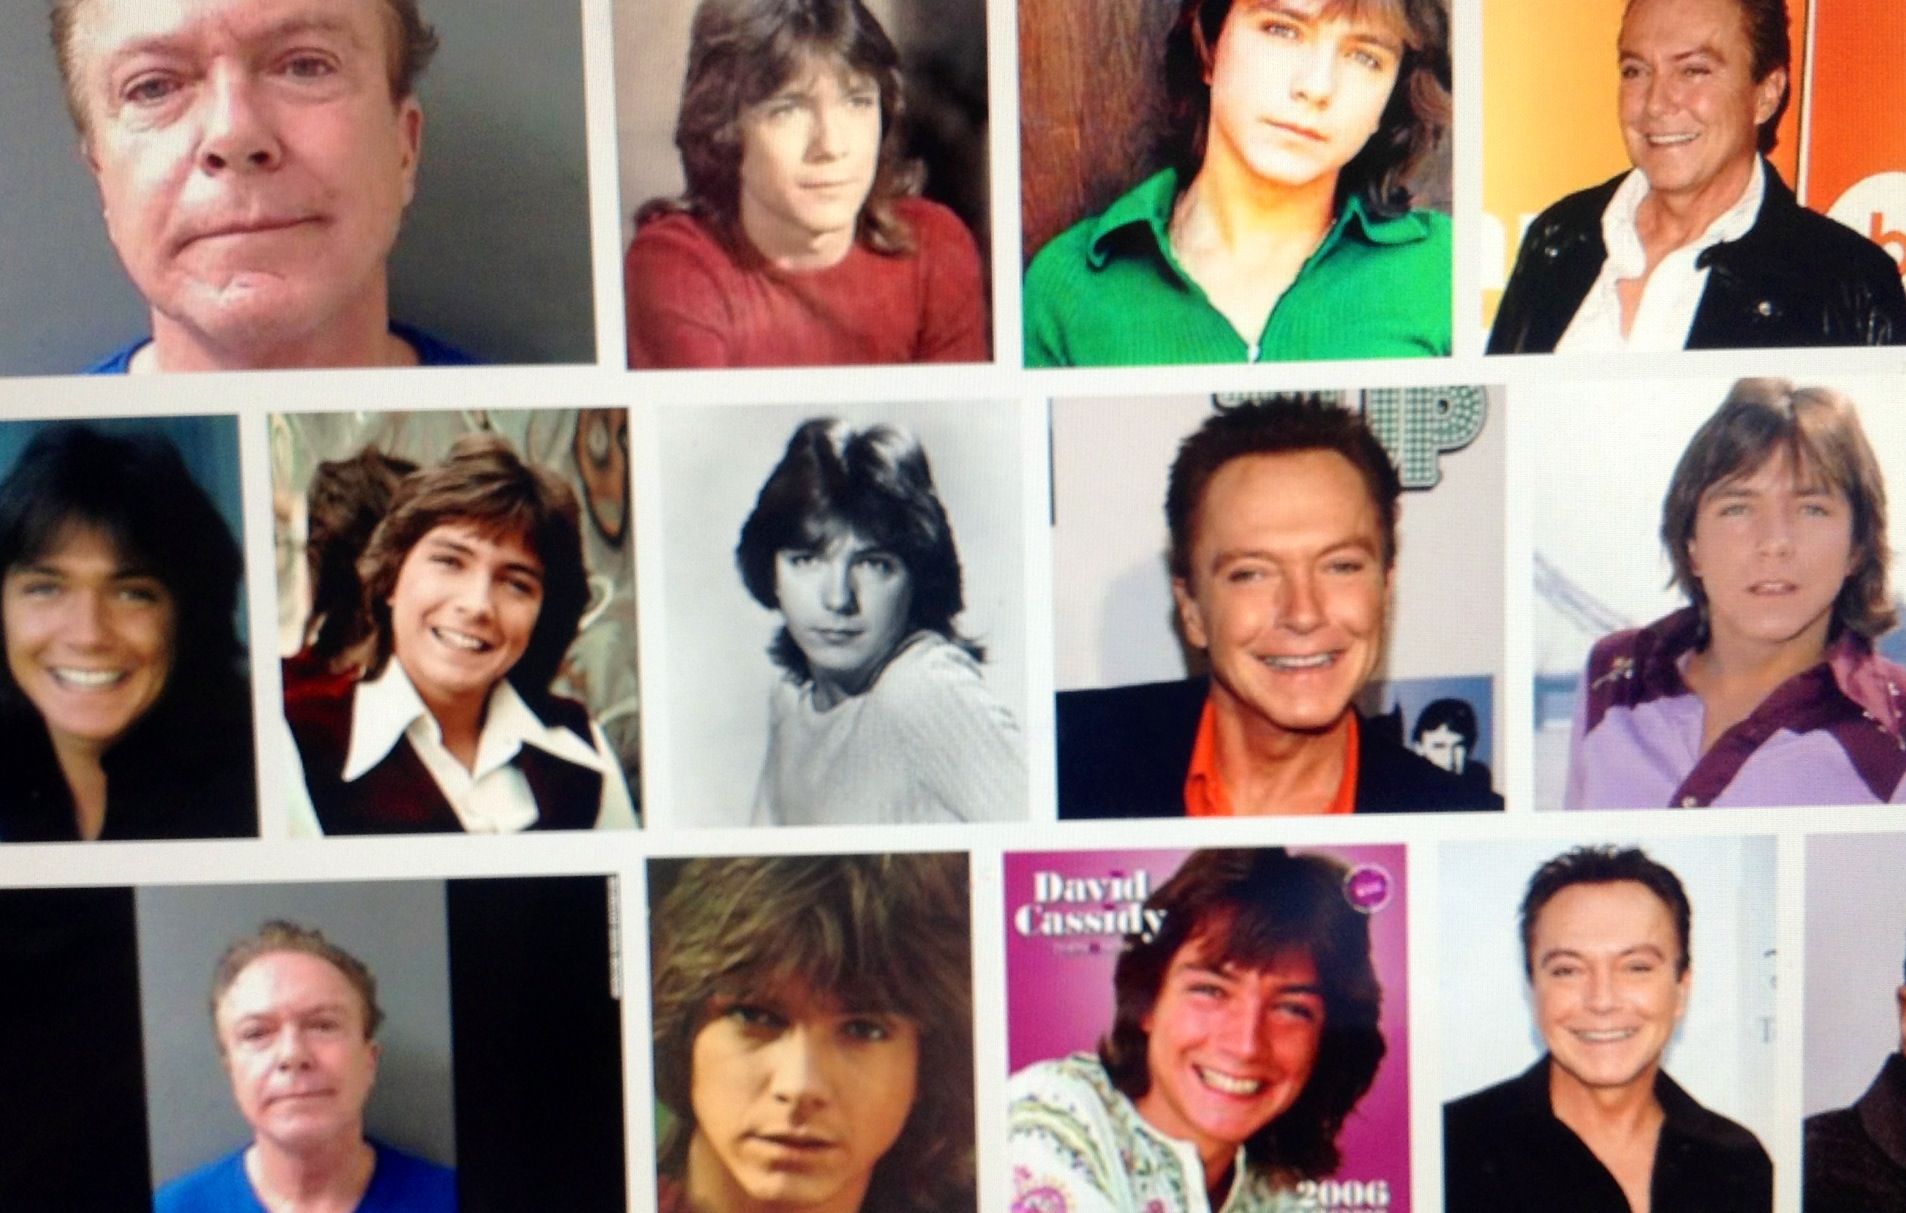 David Cassidy Arrested in LA